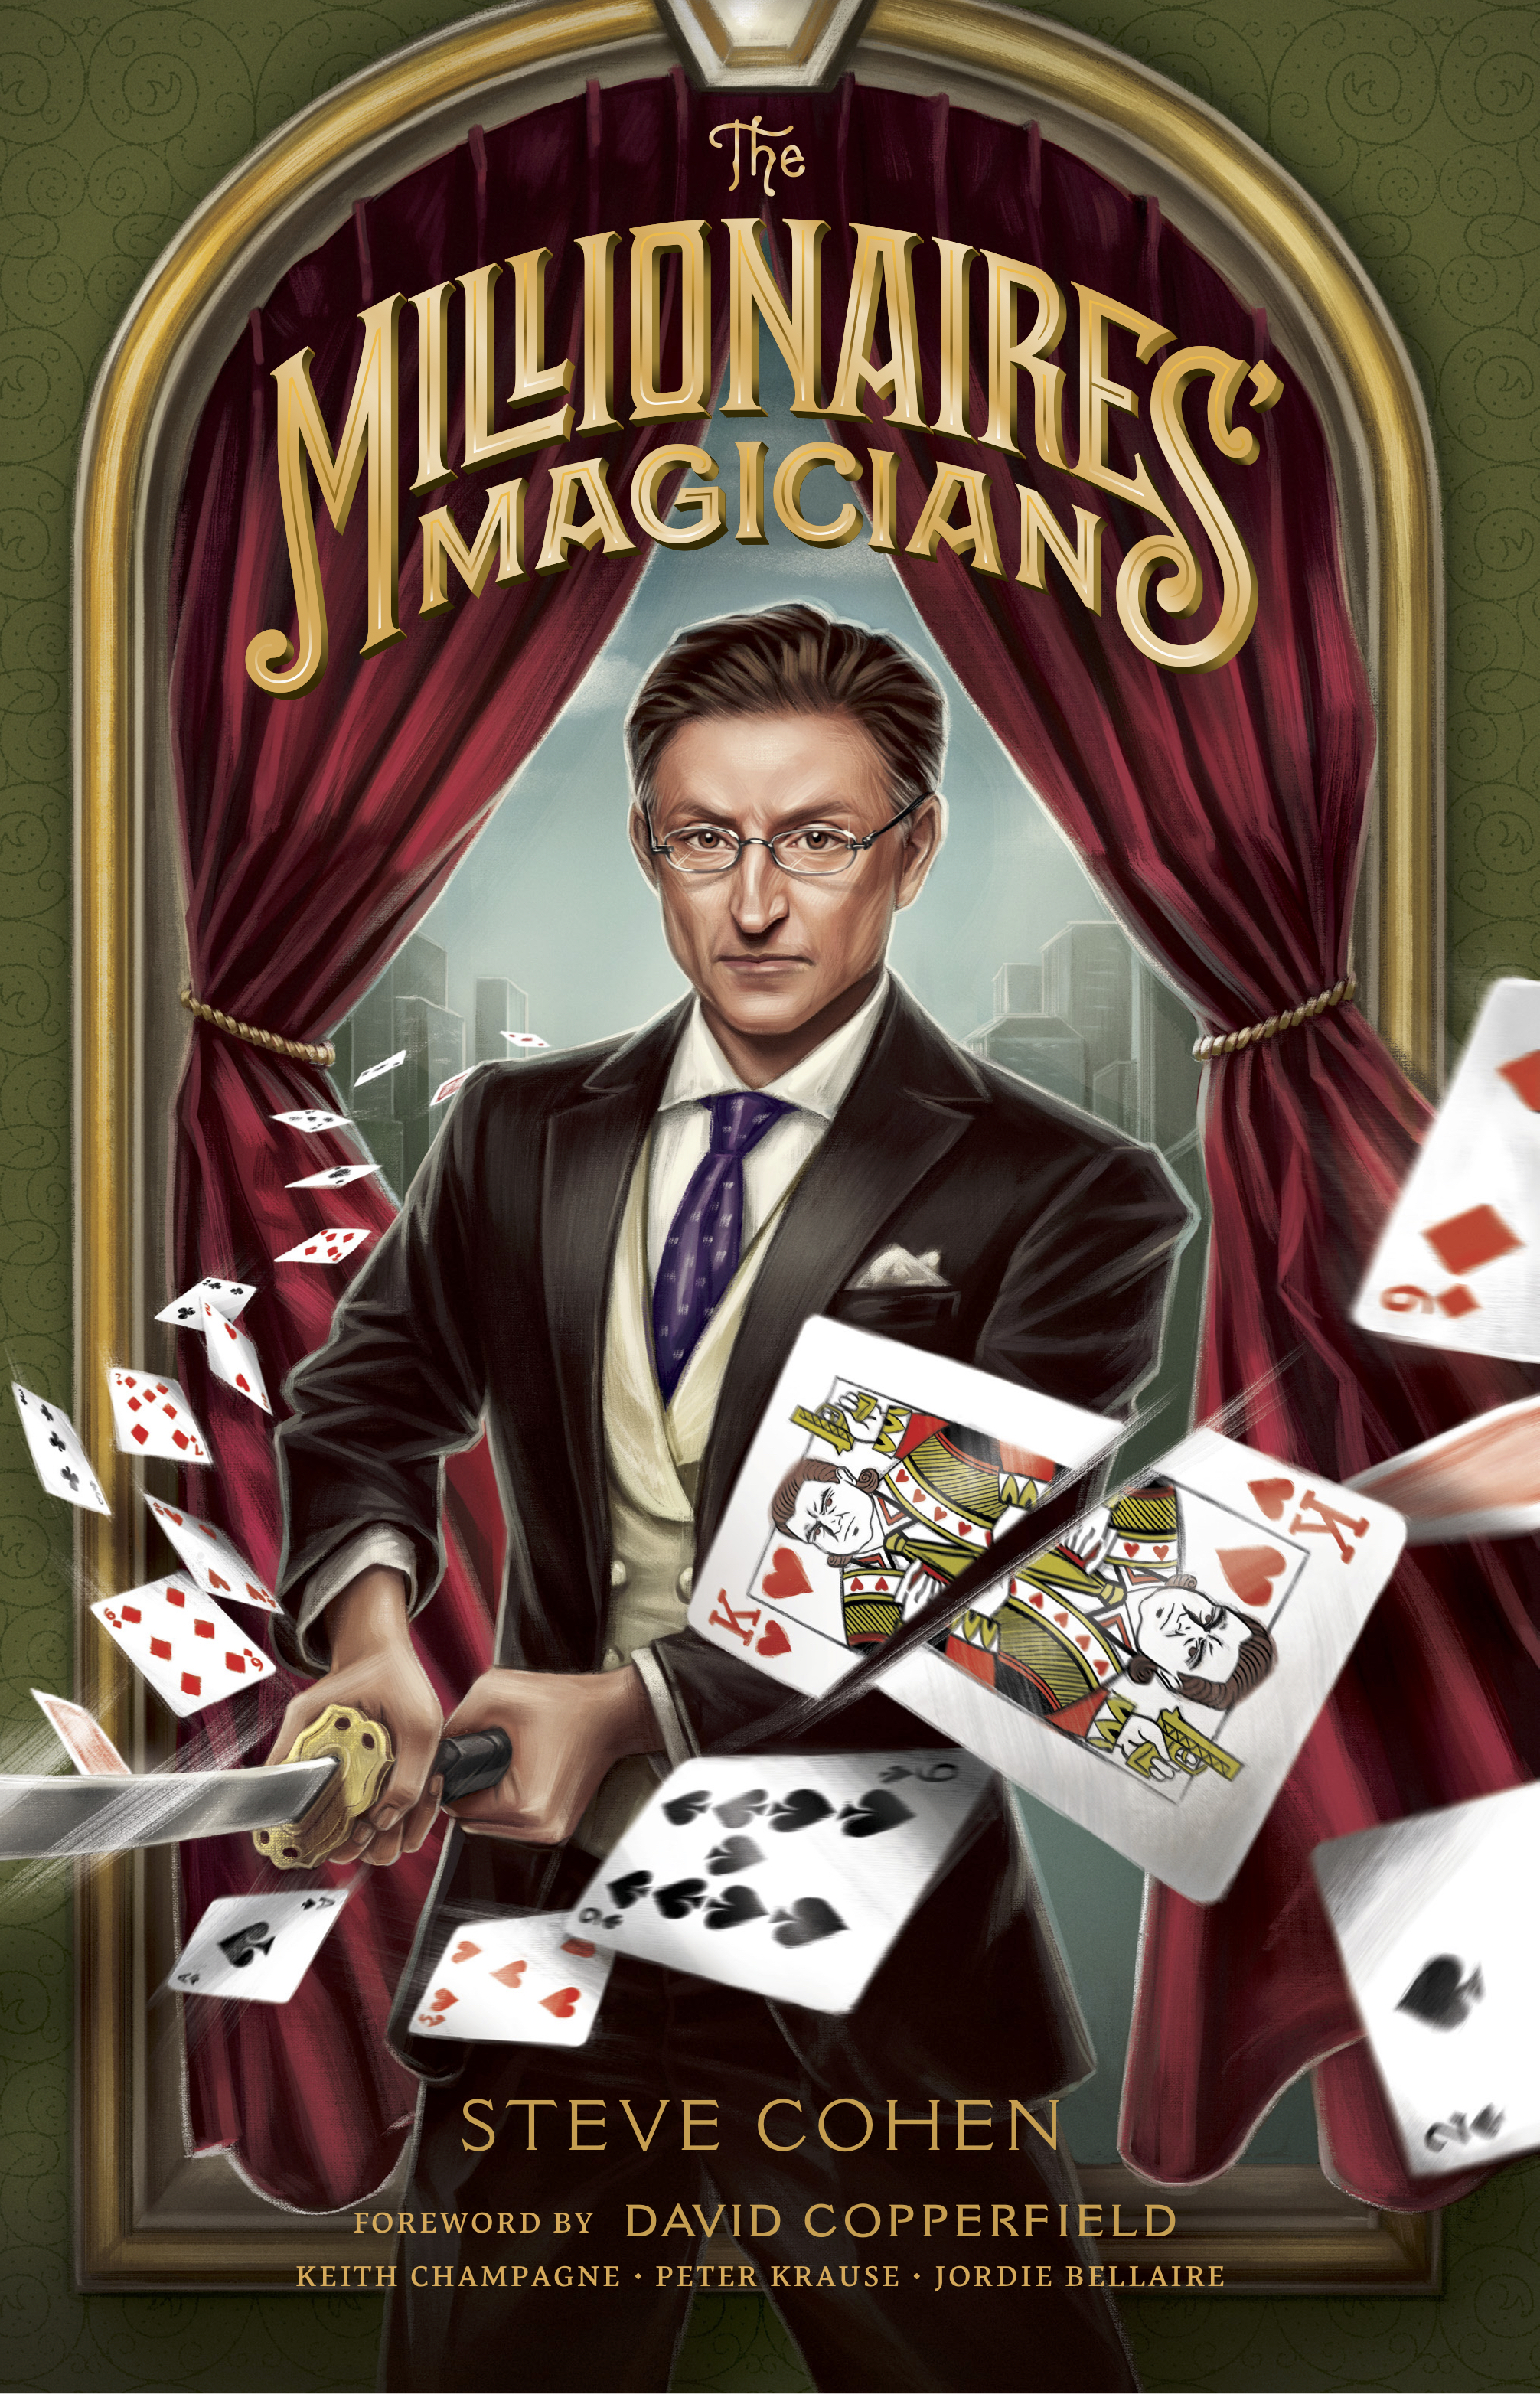 The Millionaires' Magician  is available now via the book's website.